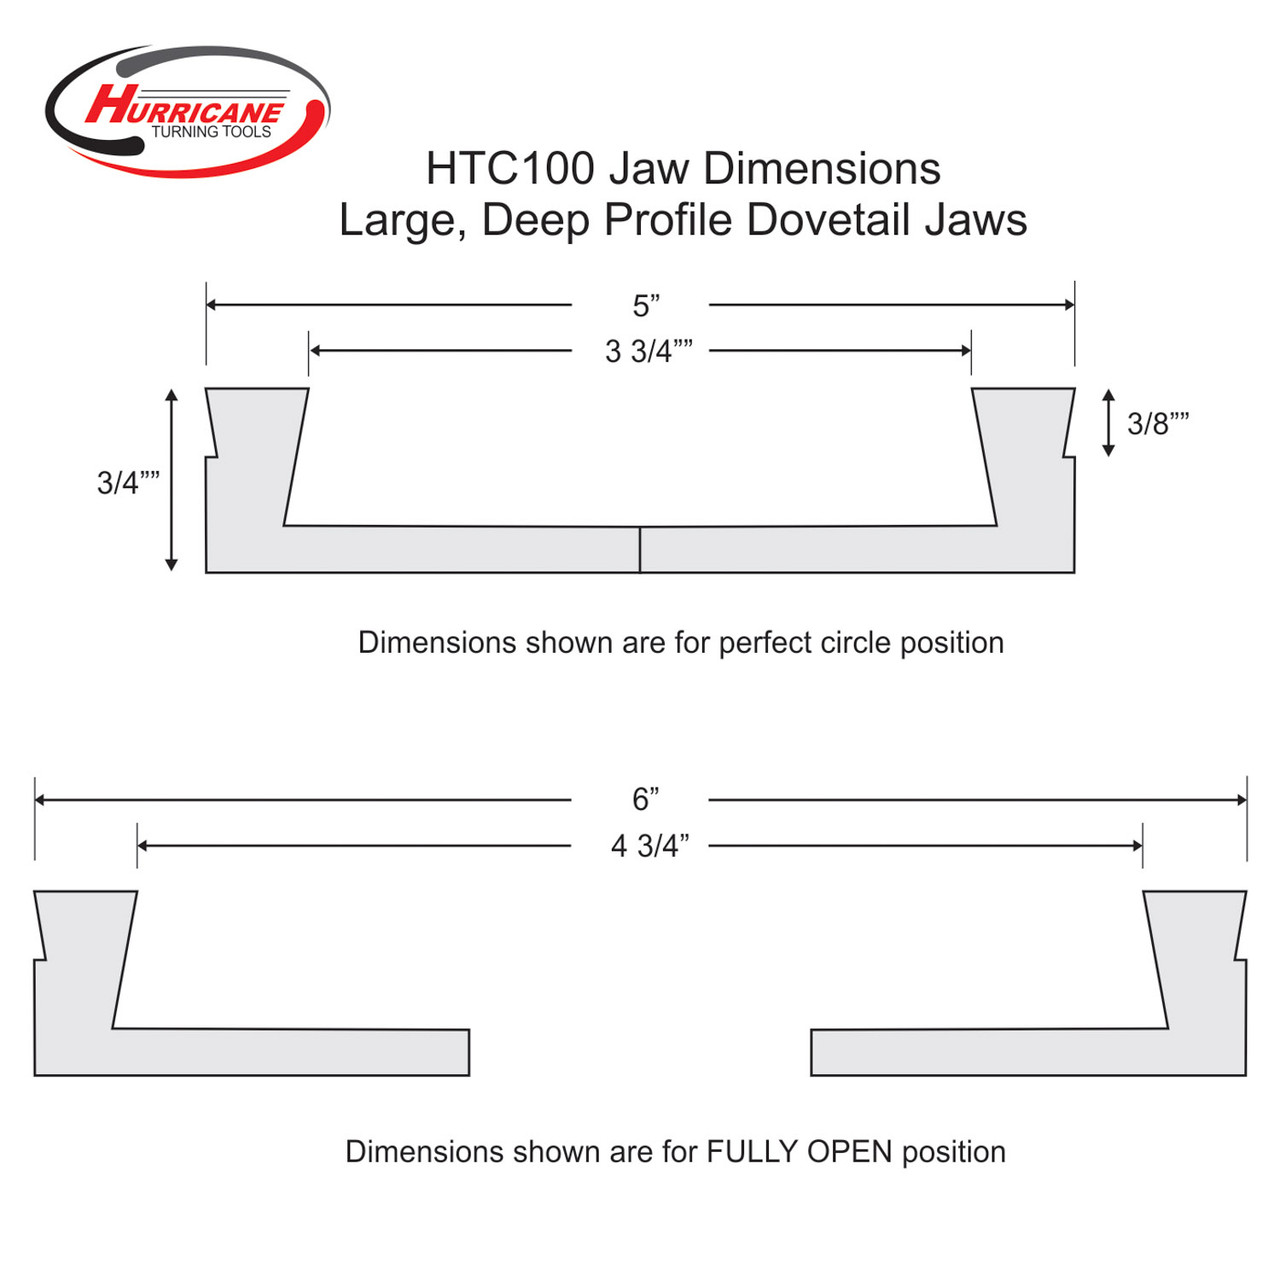 Hurricane Large Deep Profile Dovetail Jaws for the HTC100 Chuck